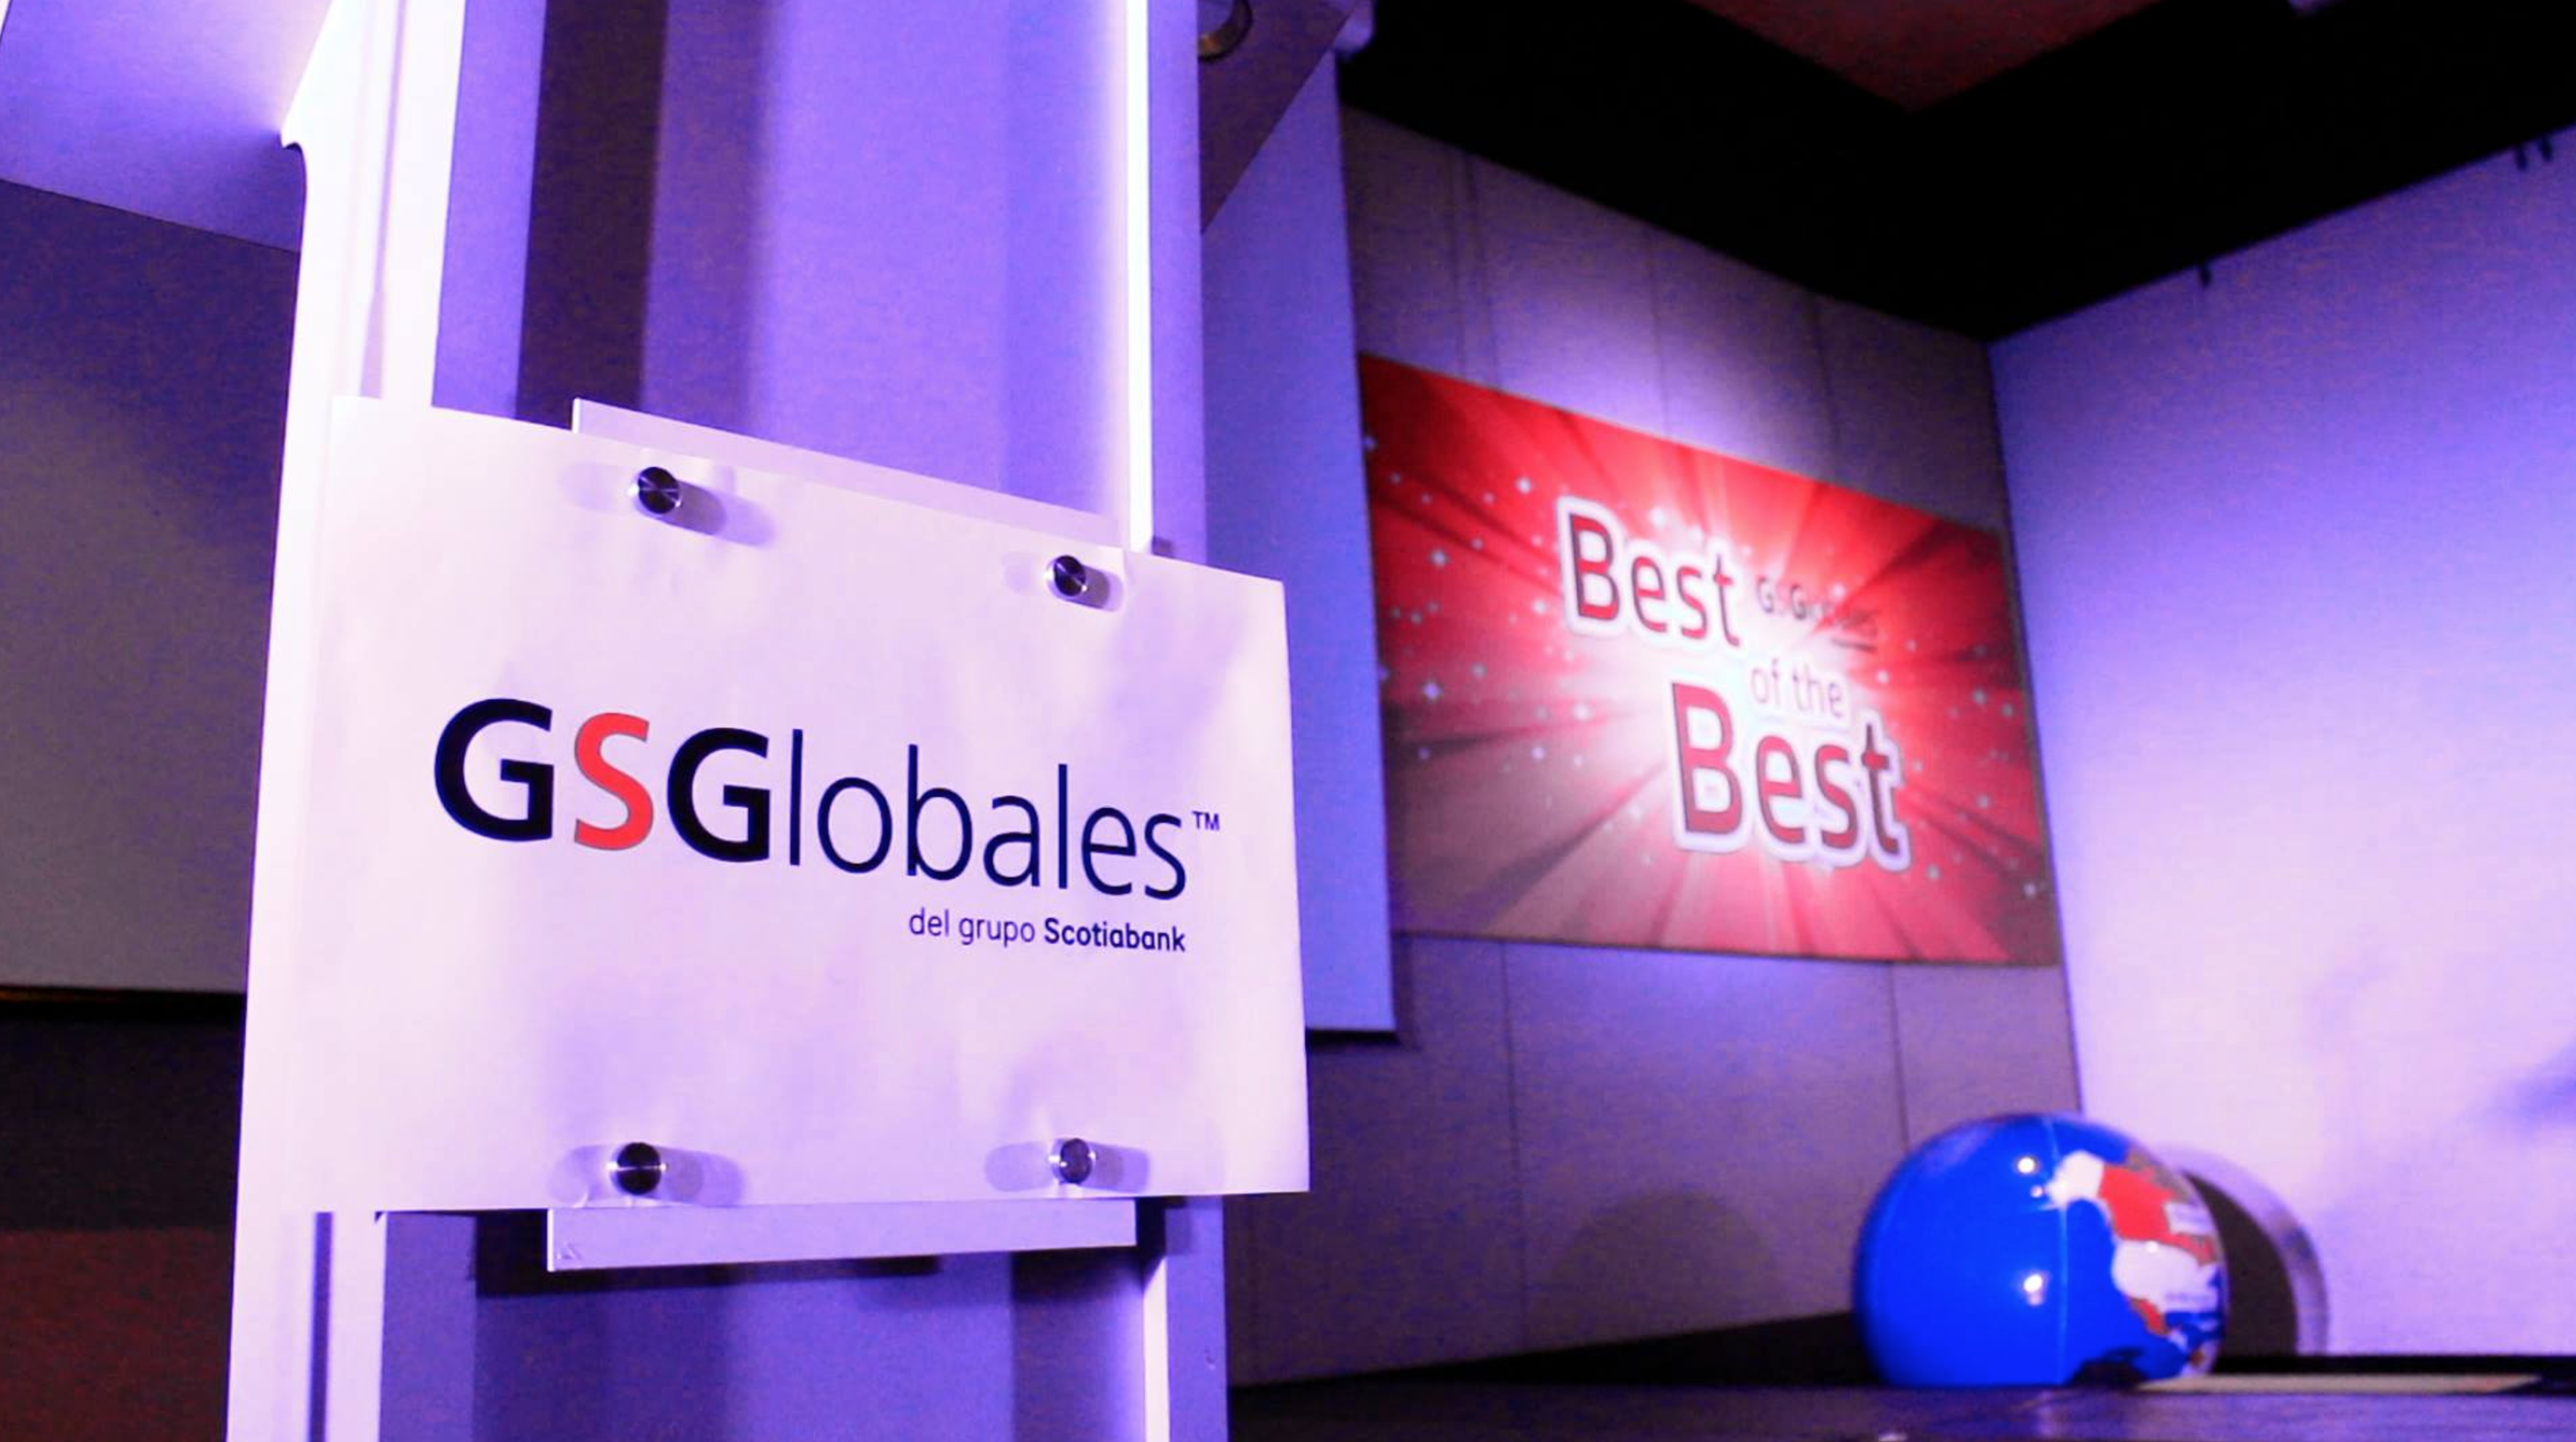 GSG GLOBALES